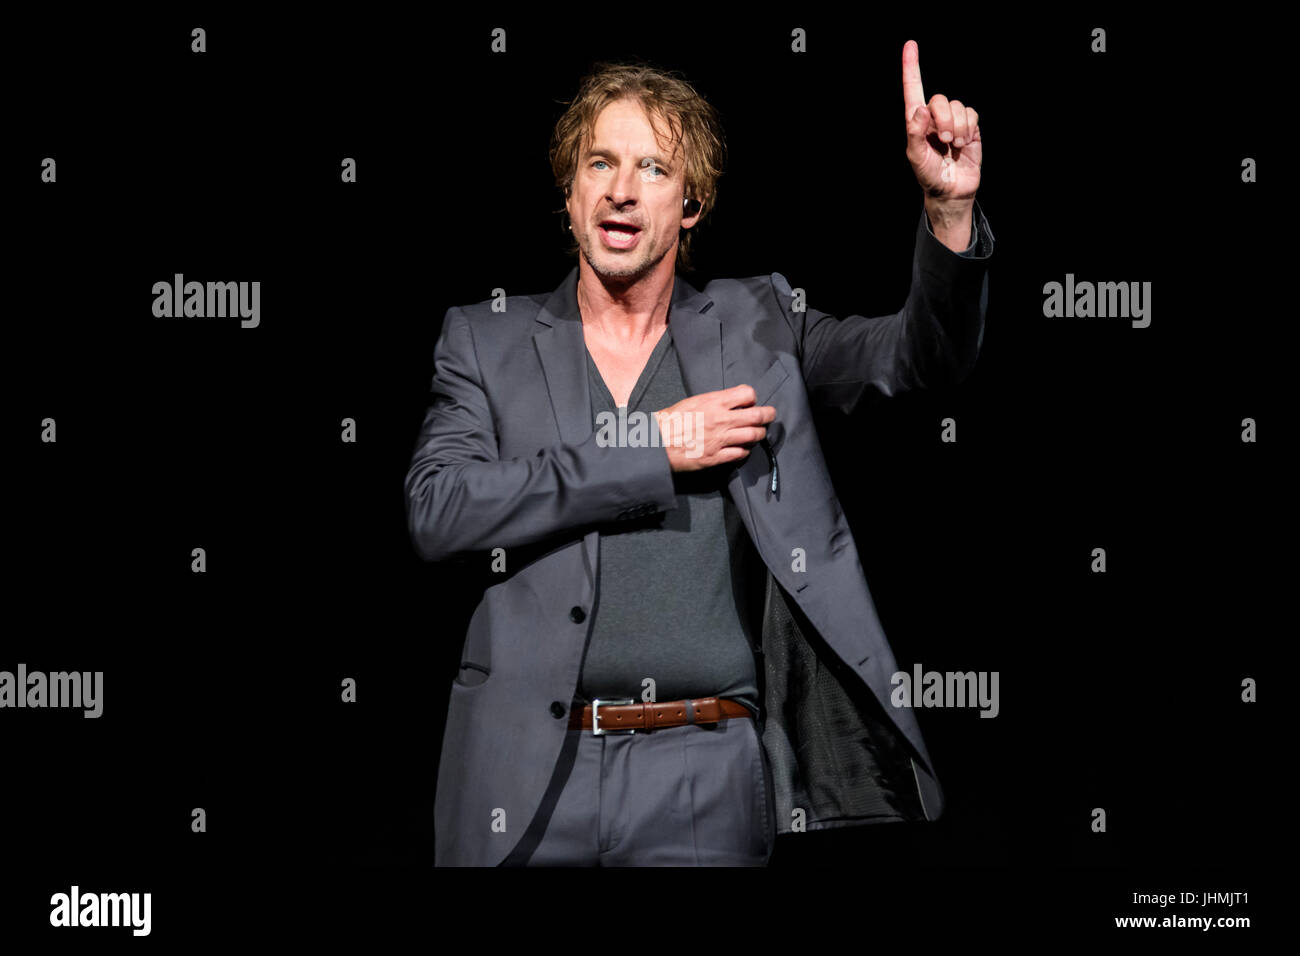 Wetzlar, Germany. 14th July, 2017. Ingolf Lück, German actor, presenter and comedian in his role as tabloid - Stock Image